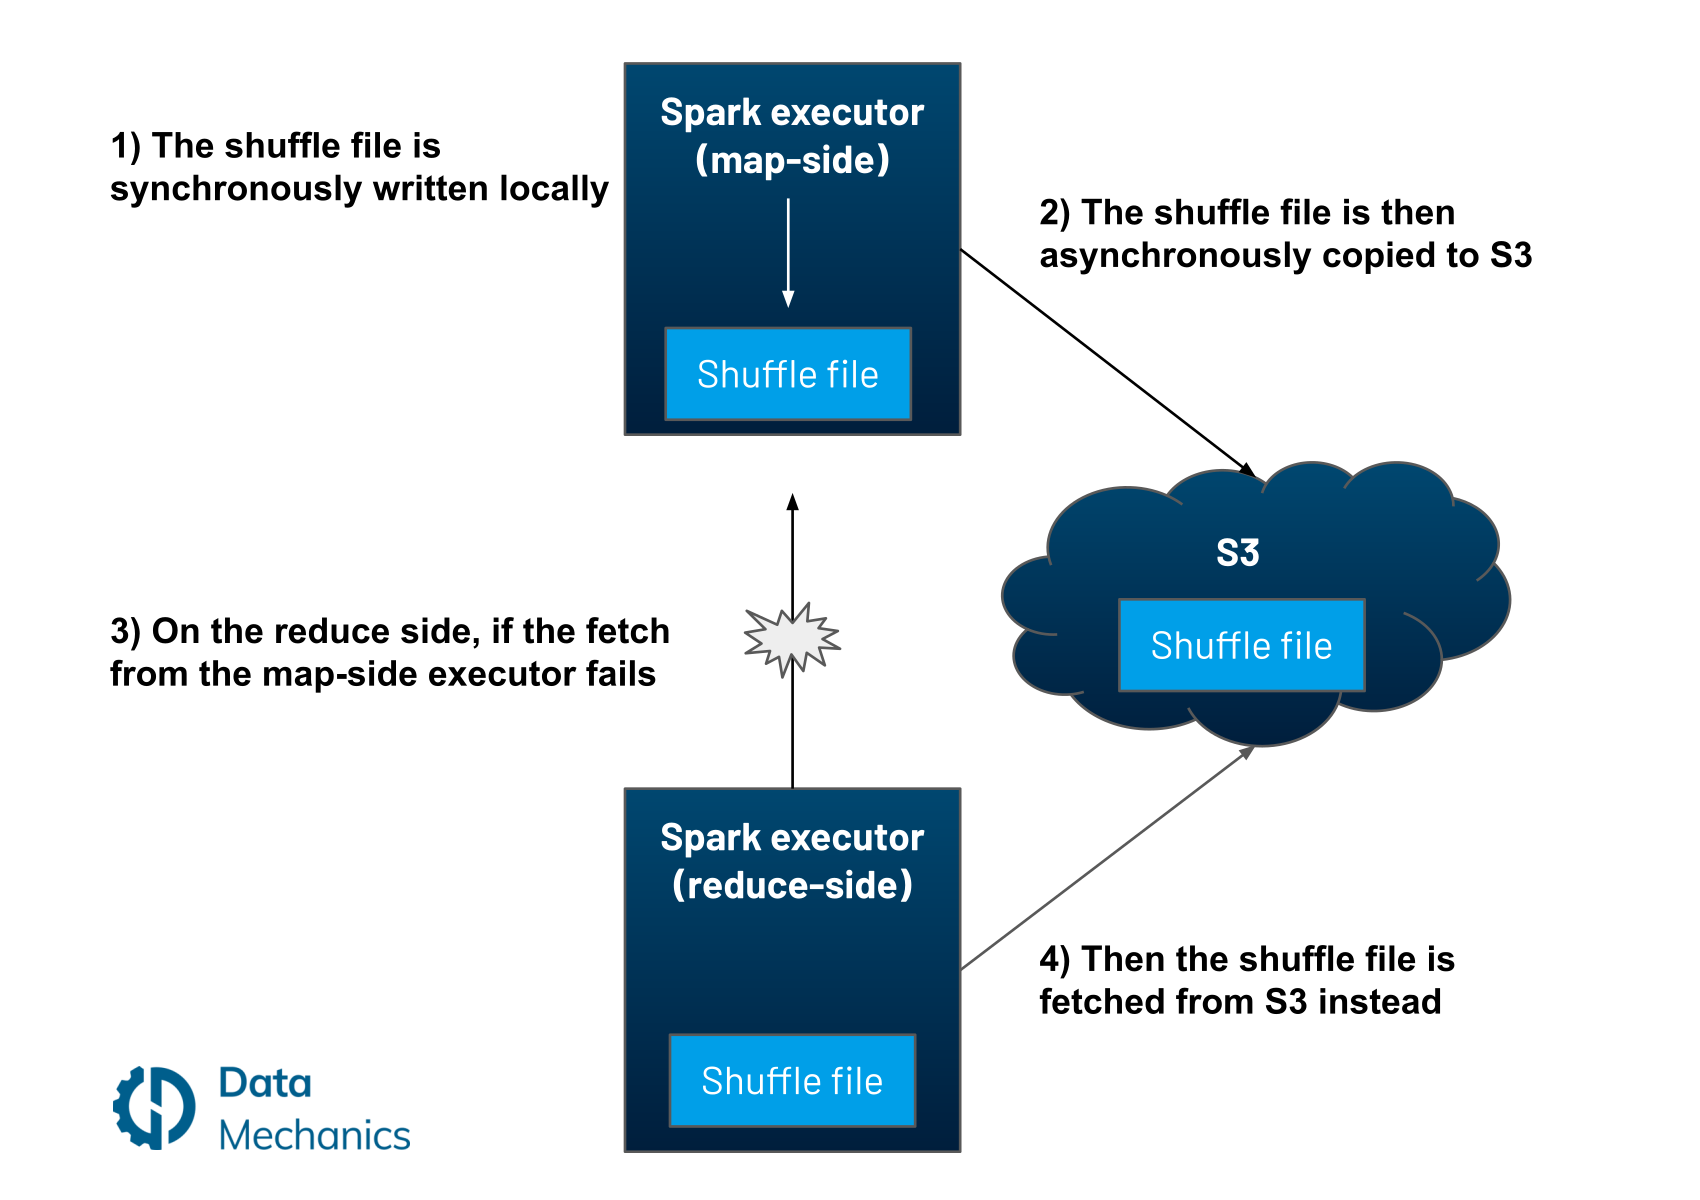 [SPARK-25299] Using remote storage to store shuffle files without impacting performance